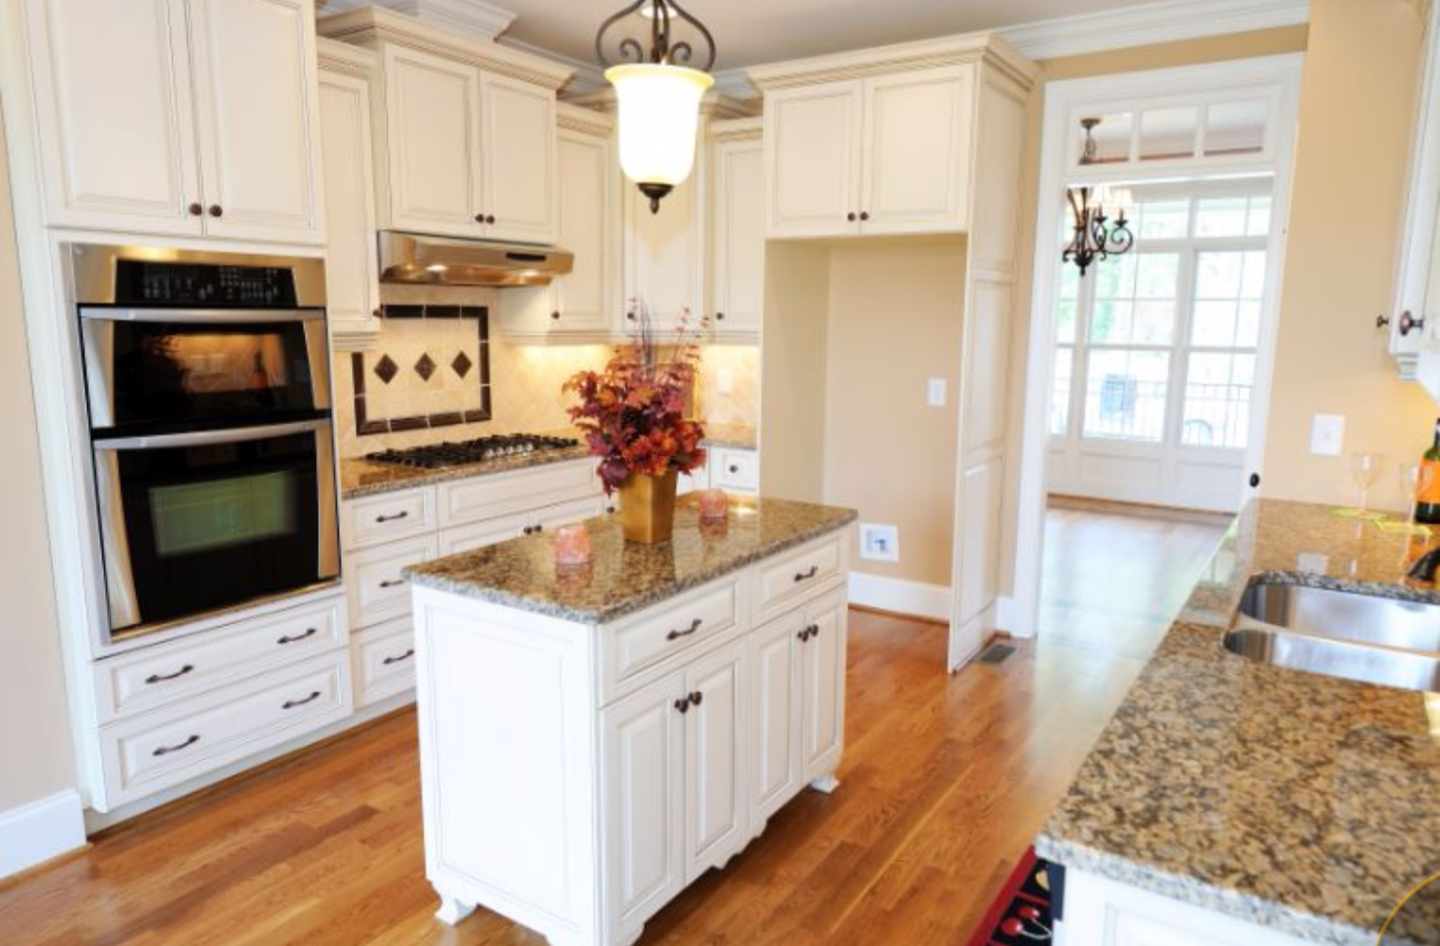 Painting kitchen cabinets and cabinet refinishing denver for Cabinets kitchen cabinets